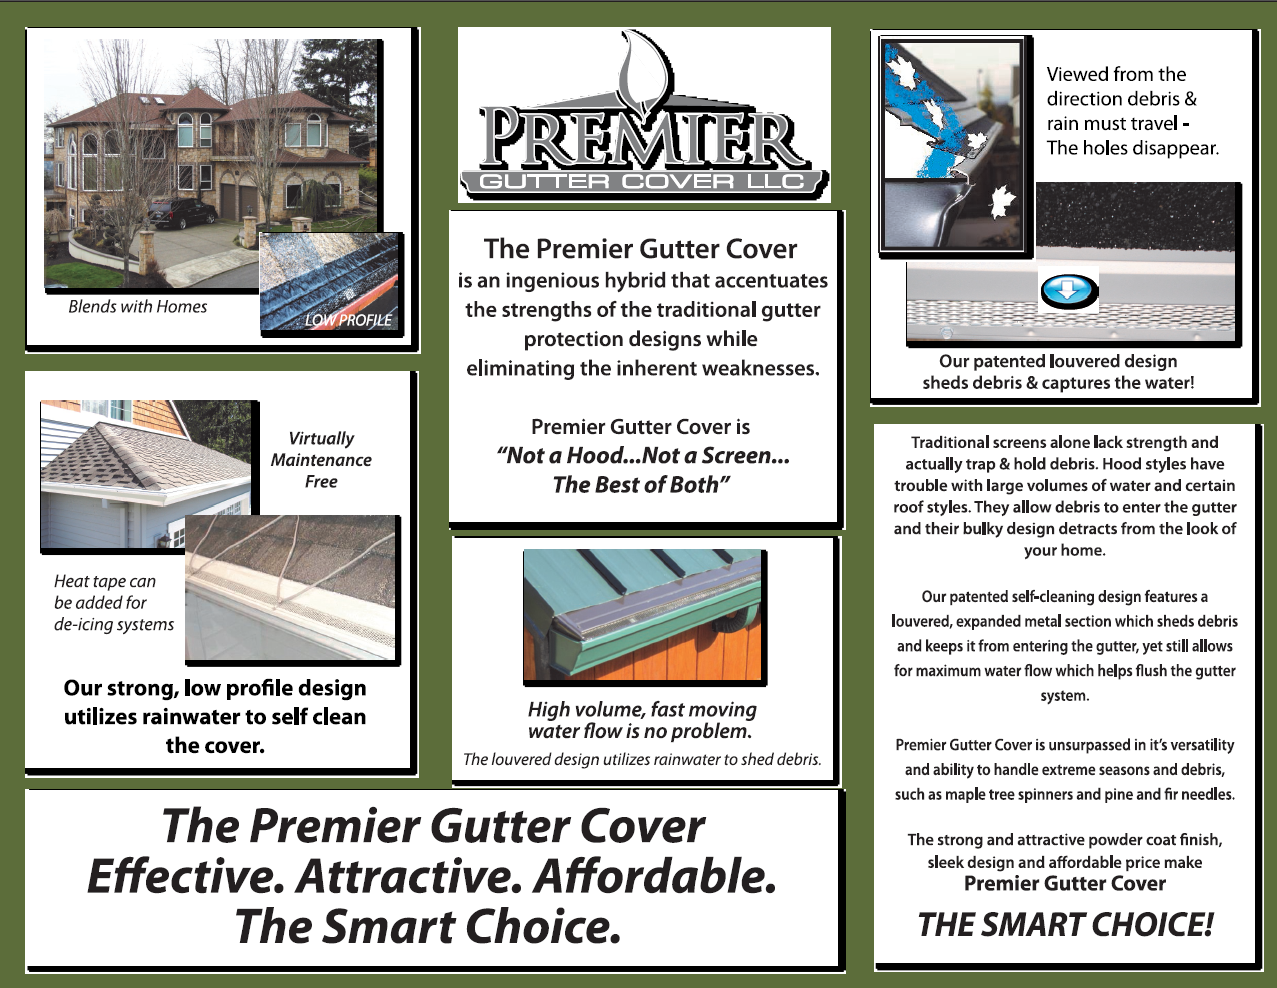 Indiana premier gutter covers and gutter guards